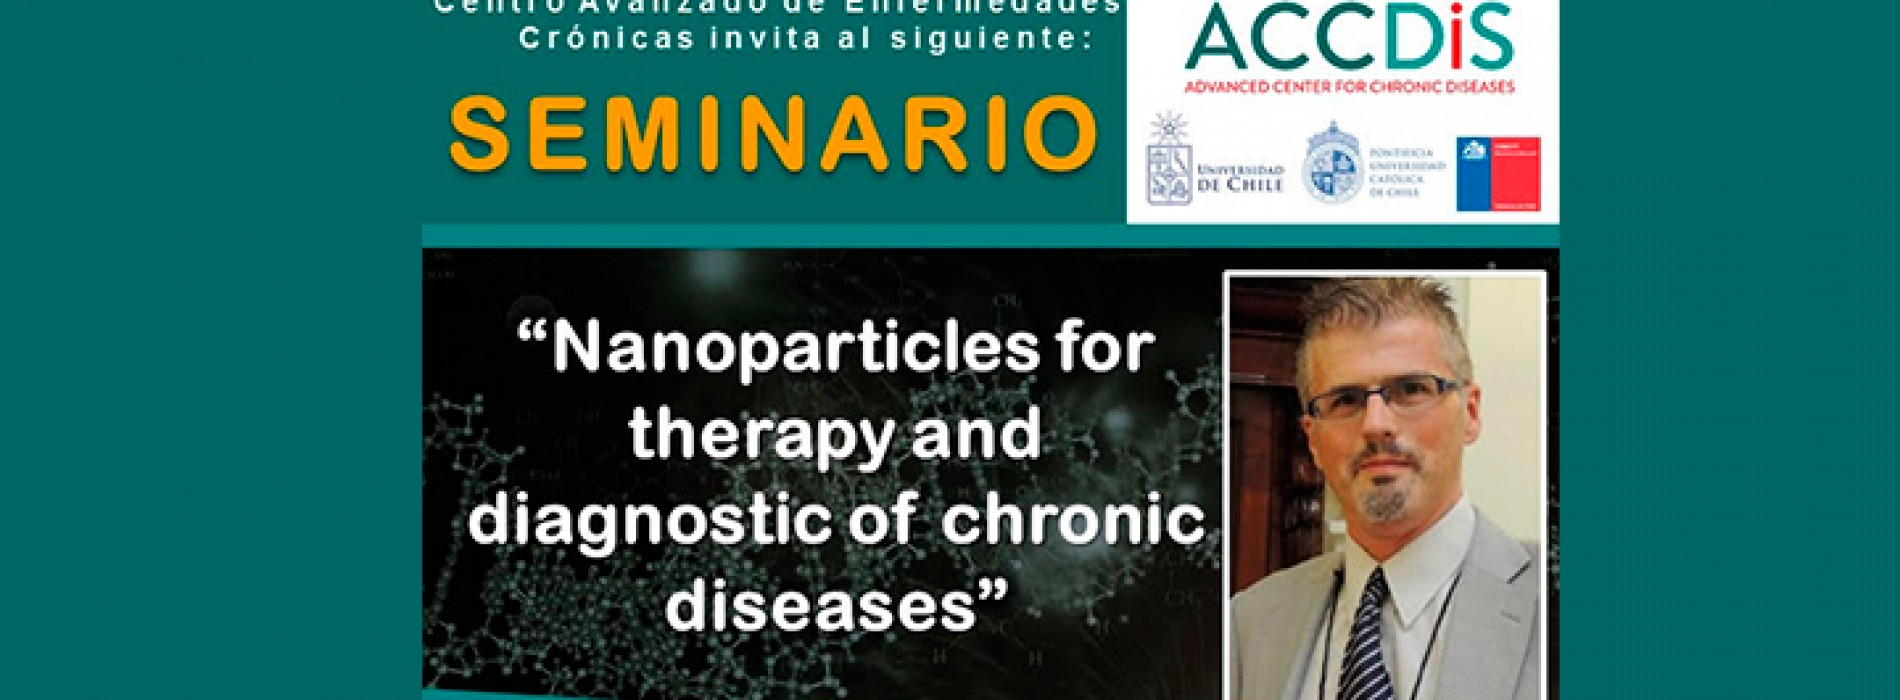 "SEMINARIO ACCDiS ""Nanoparticles for therapy and diagnostic of chronic diseases""  Dr. Marcelo Kogan – Jueves 22 de octubre"